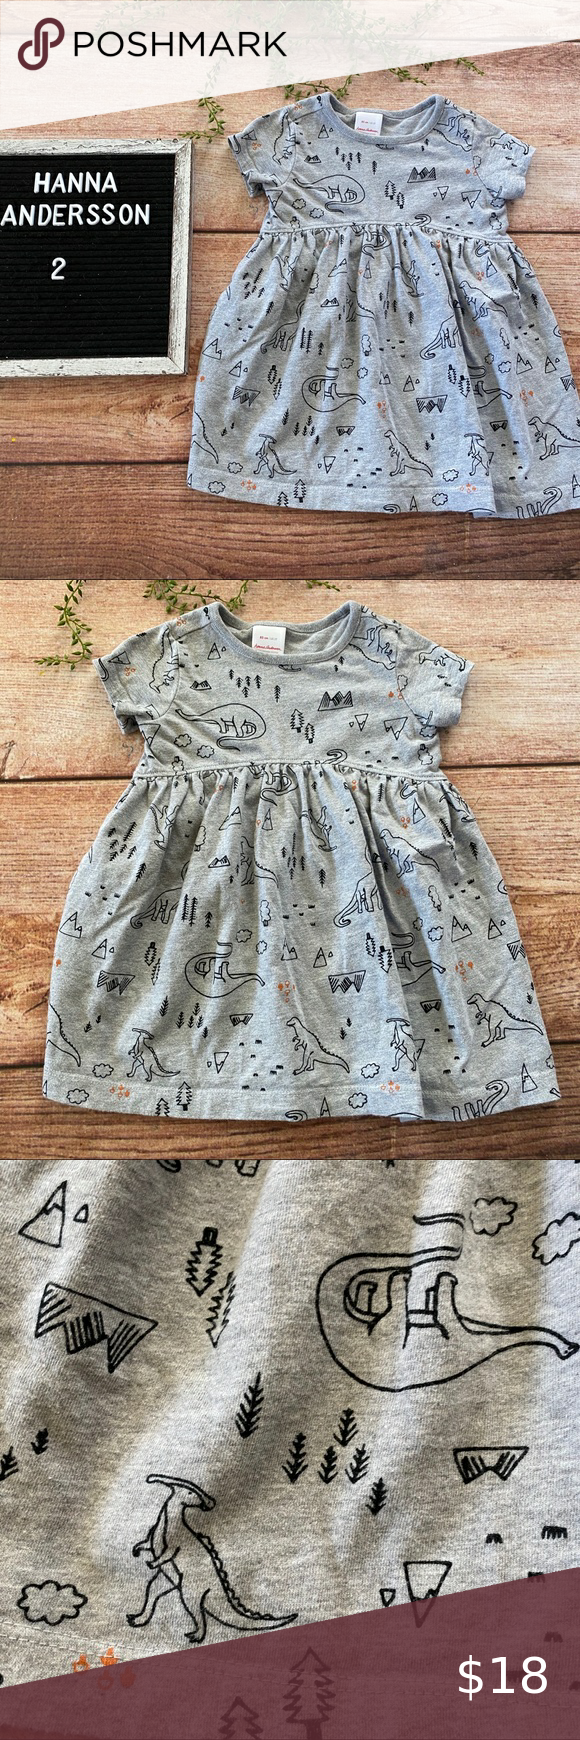 Hanna Andersson Gray Dinosaur dress 2 years Gray short sleeve Hanna Andersson dress with all over dinosaur print. Size 2 years in very good used condition (J0830) Hanna Andersson Dresses